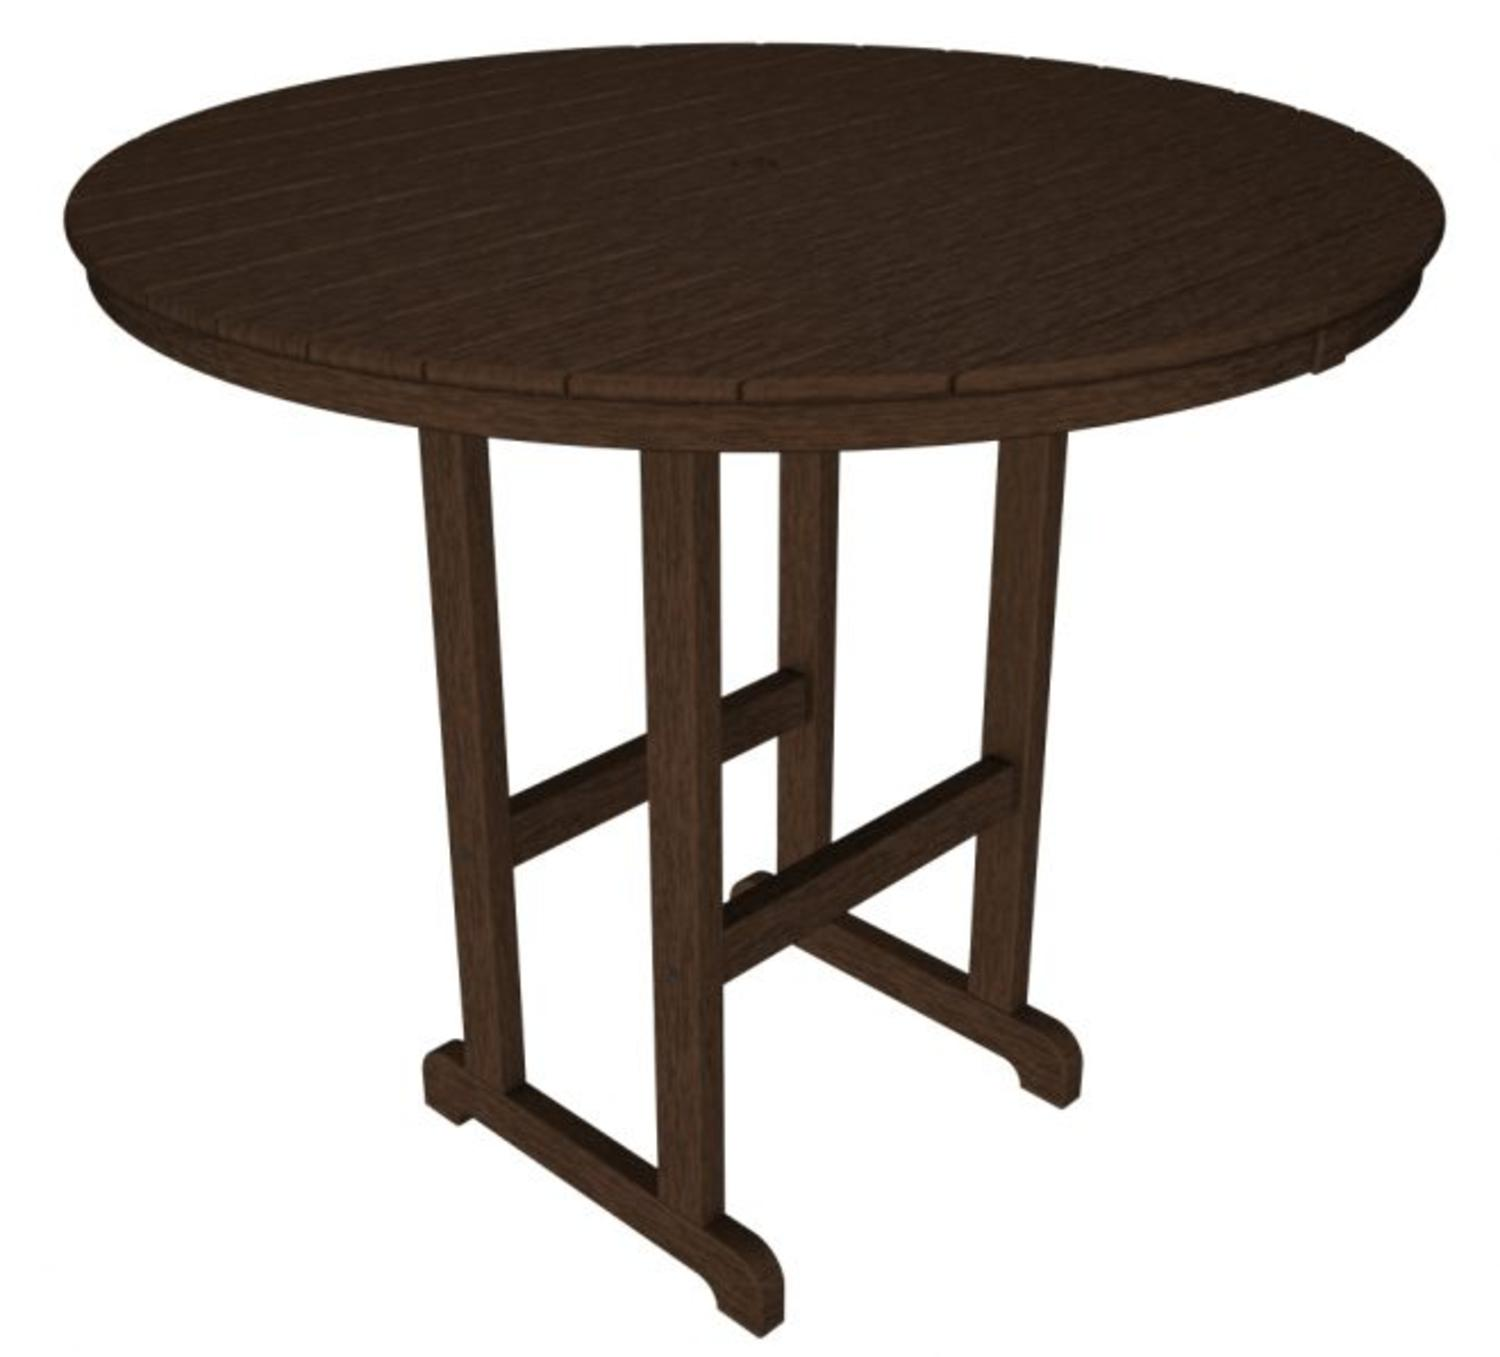 "48"" Recycled Earth-Friendly Outdoor Patio Round Pub Table Chocolate Brown by Eco-Friendly Furnishings"